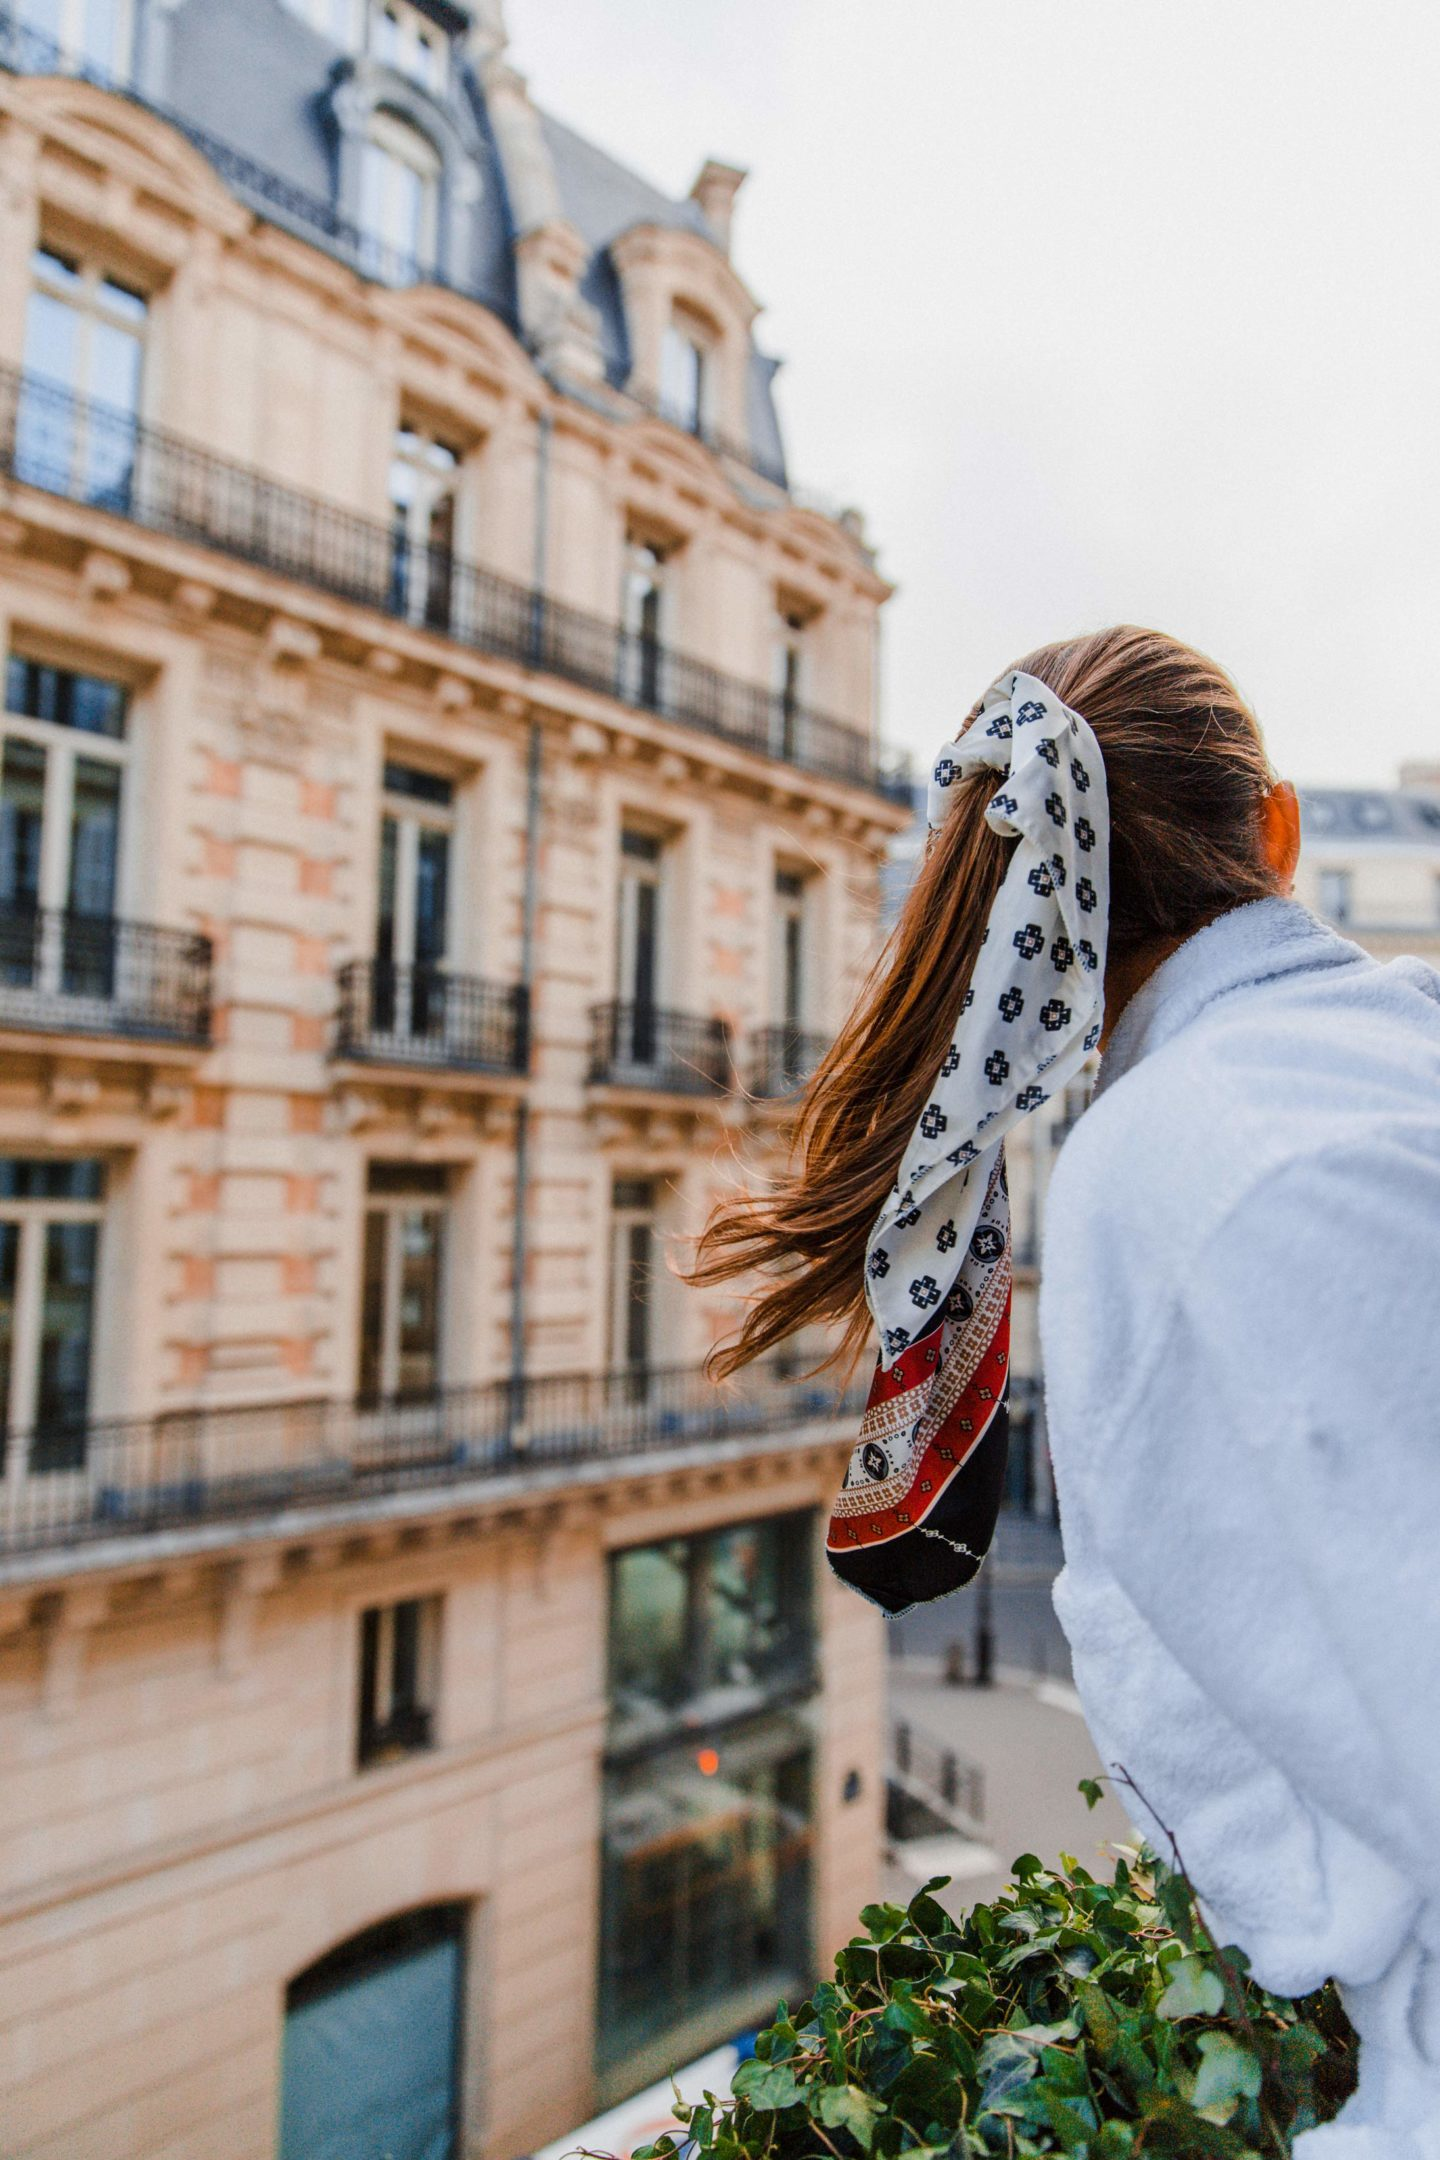 Blogger's travel guide to Paris | Top things to do and see in Paris France | Paris Photography Inspiration | Dana Berez Travel Guide Where to Stay